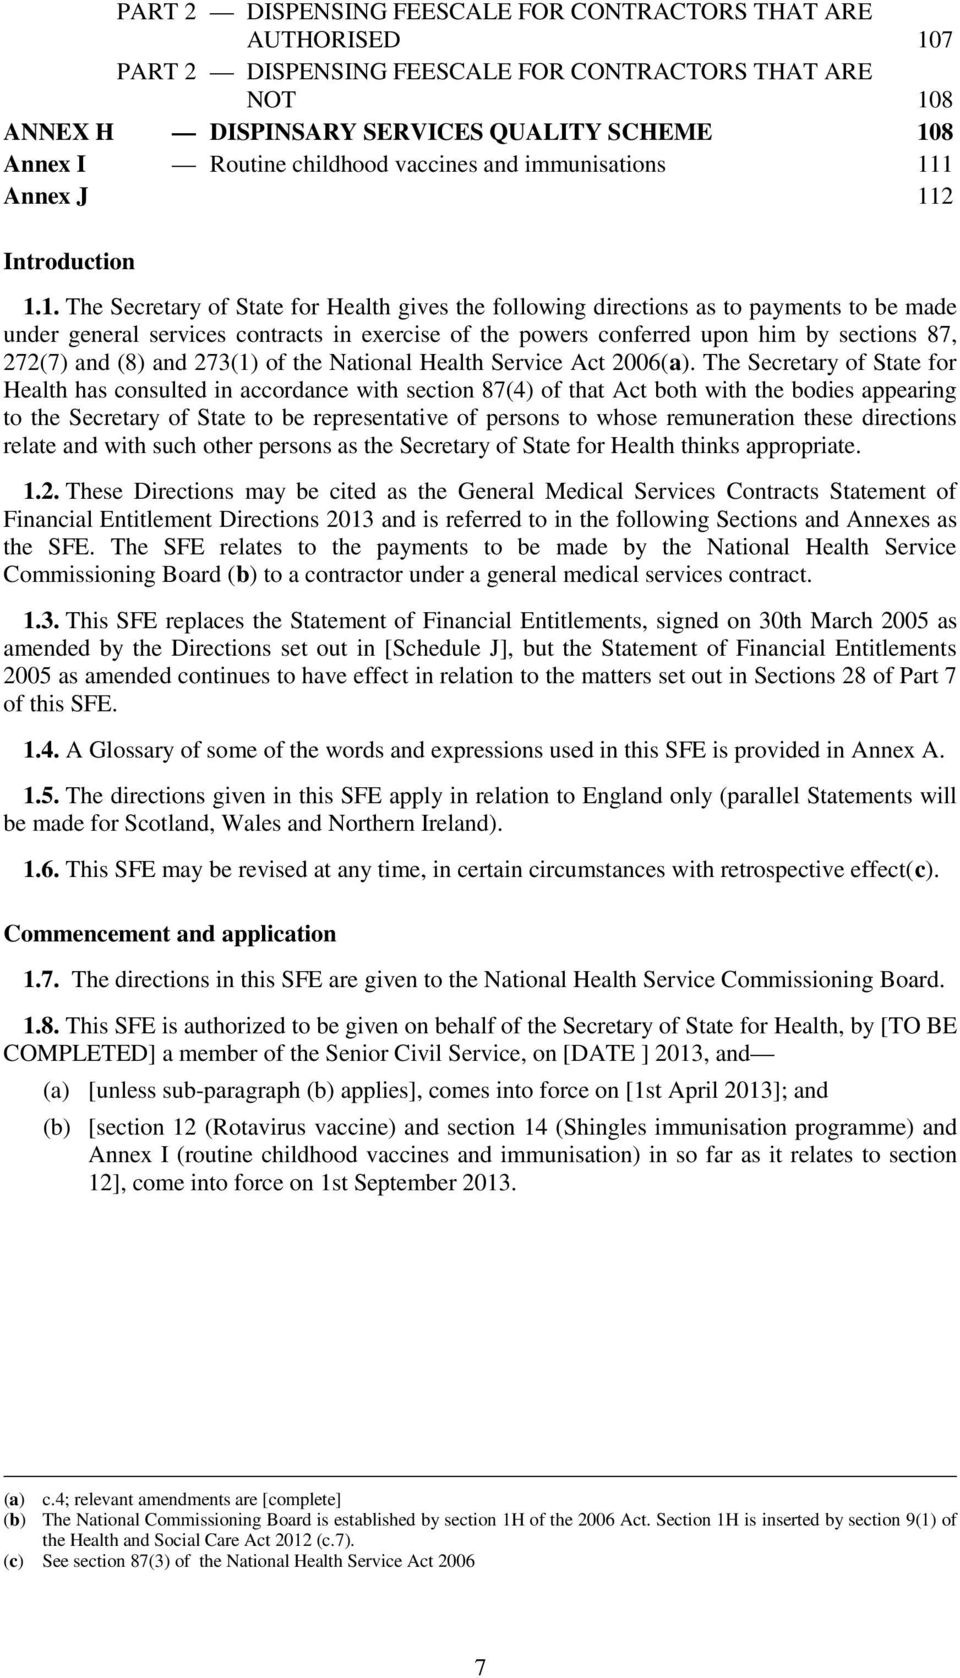 1 Annex J 112 Introduction 1.1. The Secretary of State for Health gives the following directions as to payments to be made under general services contracts in exercise of the powers conferred upon